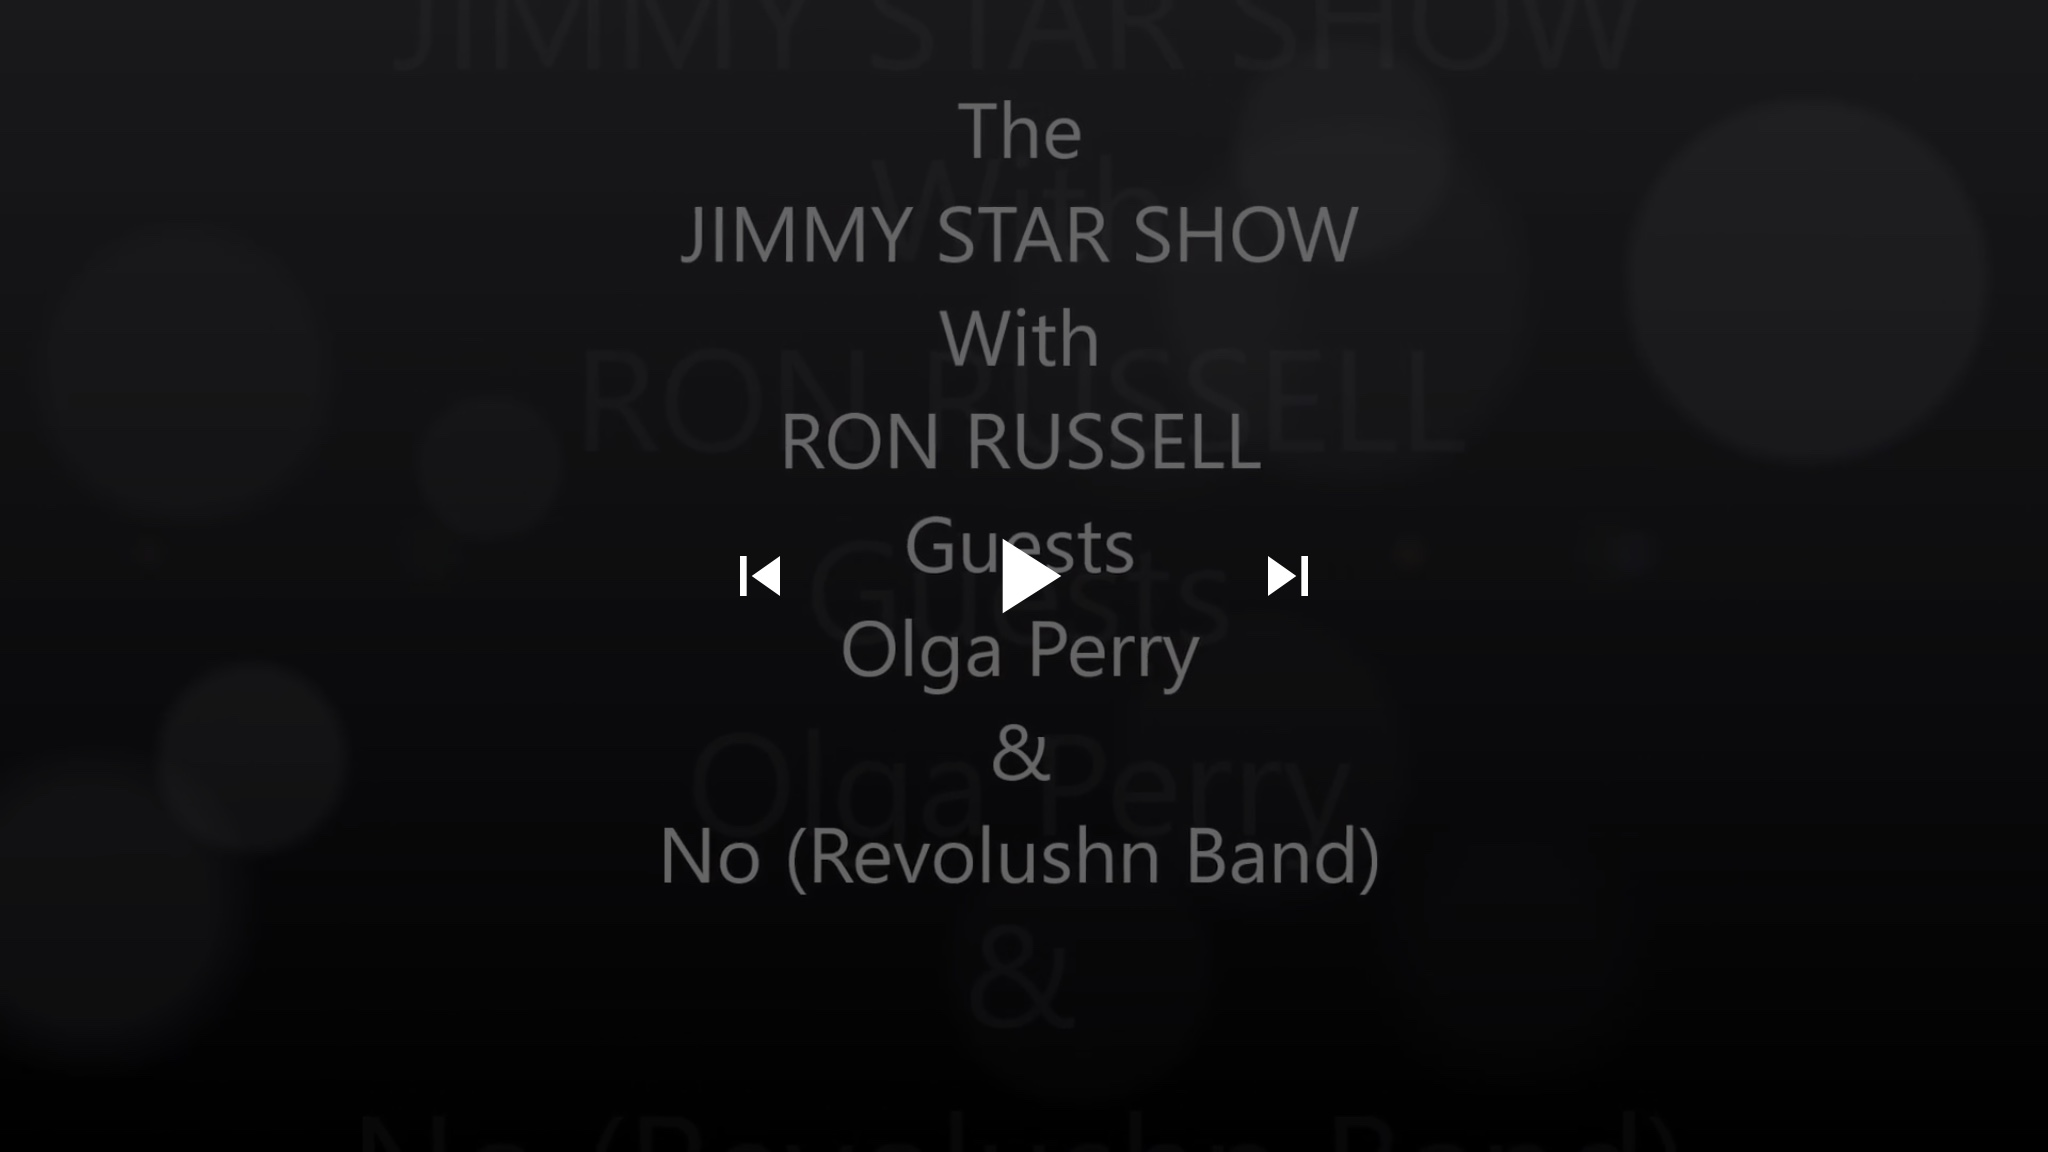 #Episode #Artist #Rock Star Olga Perry & No from #Psyche #Rock #Band Revolushn @RevolushnBand | The Jimmy Star Show with Ron Russell, Wednesday, October 17, 2018 #jimmystarshow